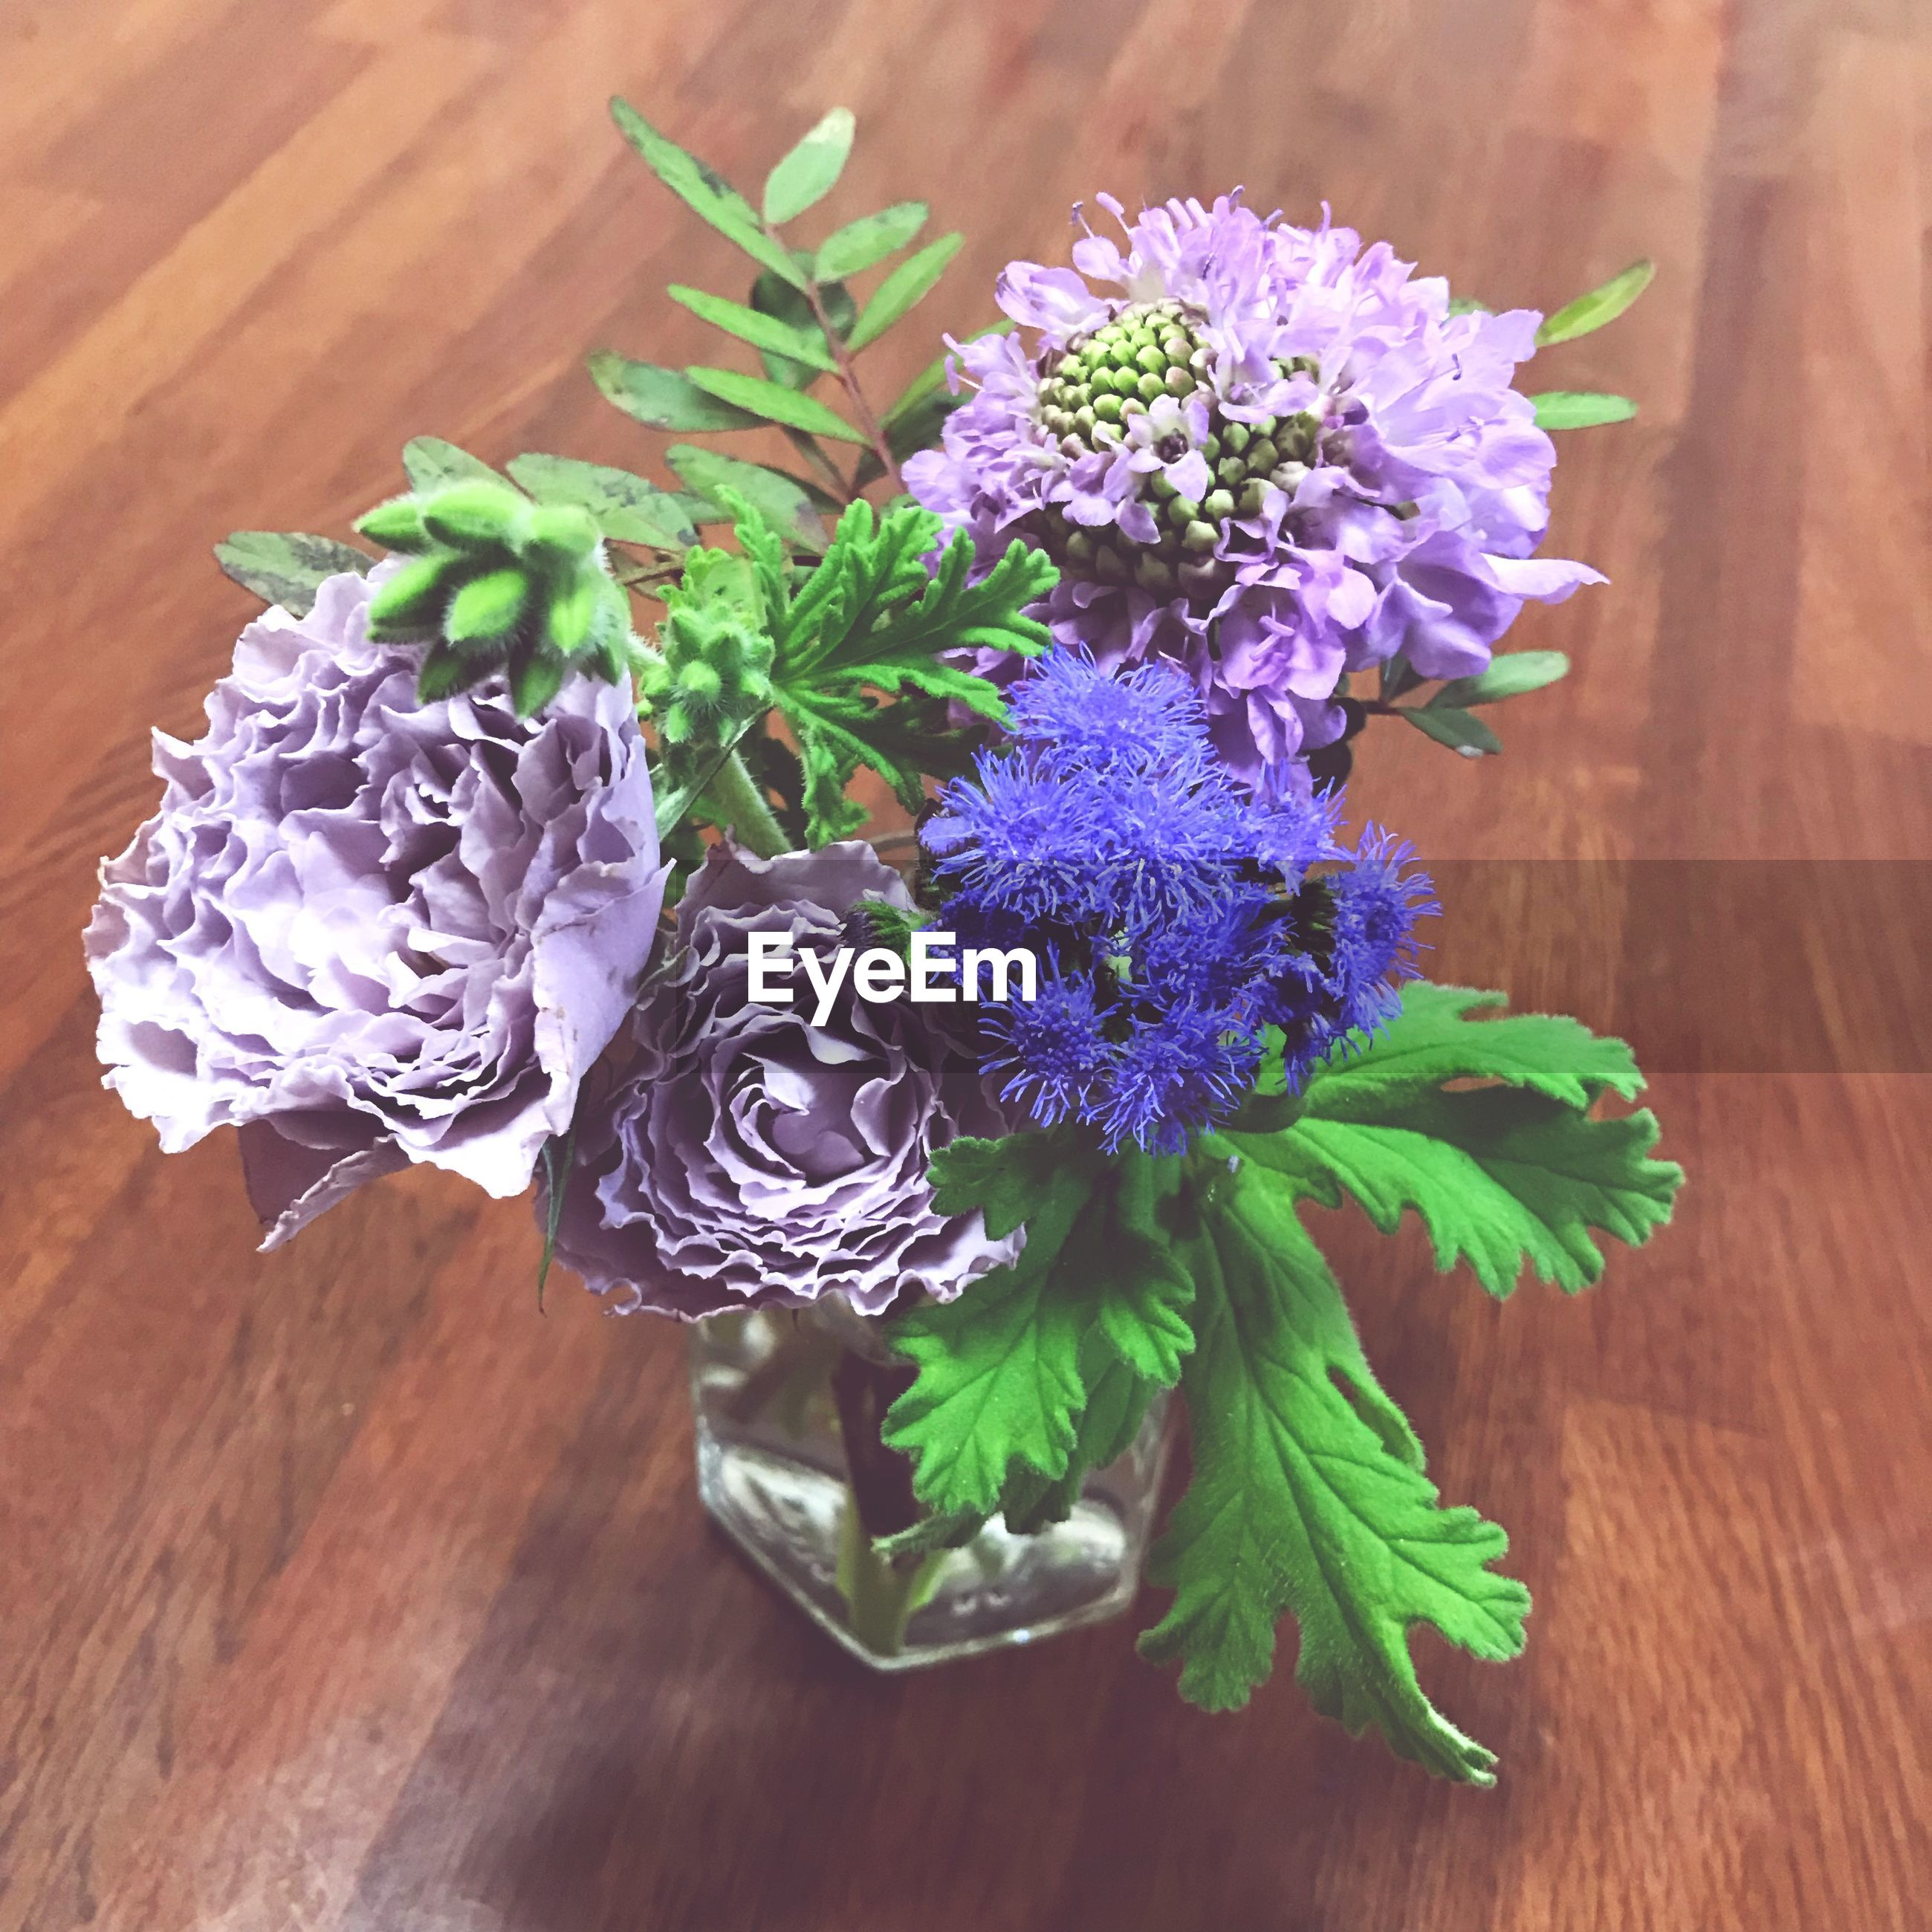 flower, flowering plant, table, freshness, plant, purple, wood - material, close-up, vulnerability, fragility, high angle view, indoors, leaf, nature, beauty in nature, plant part, flower head, no people, inflorescence, green color, flower arrangement, bunch of flowers, bouquet